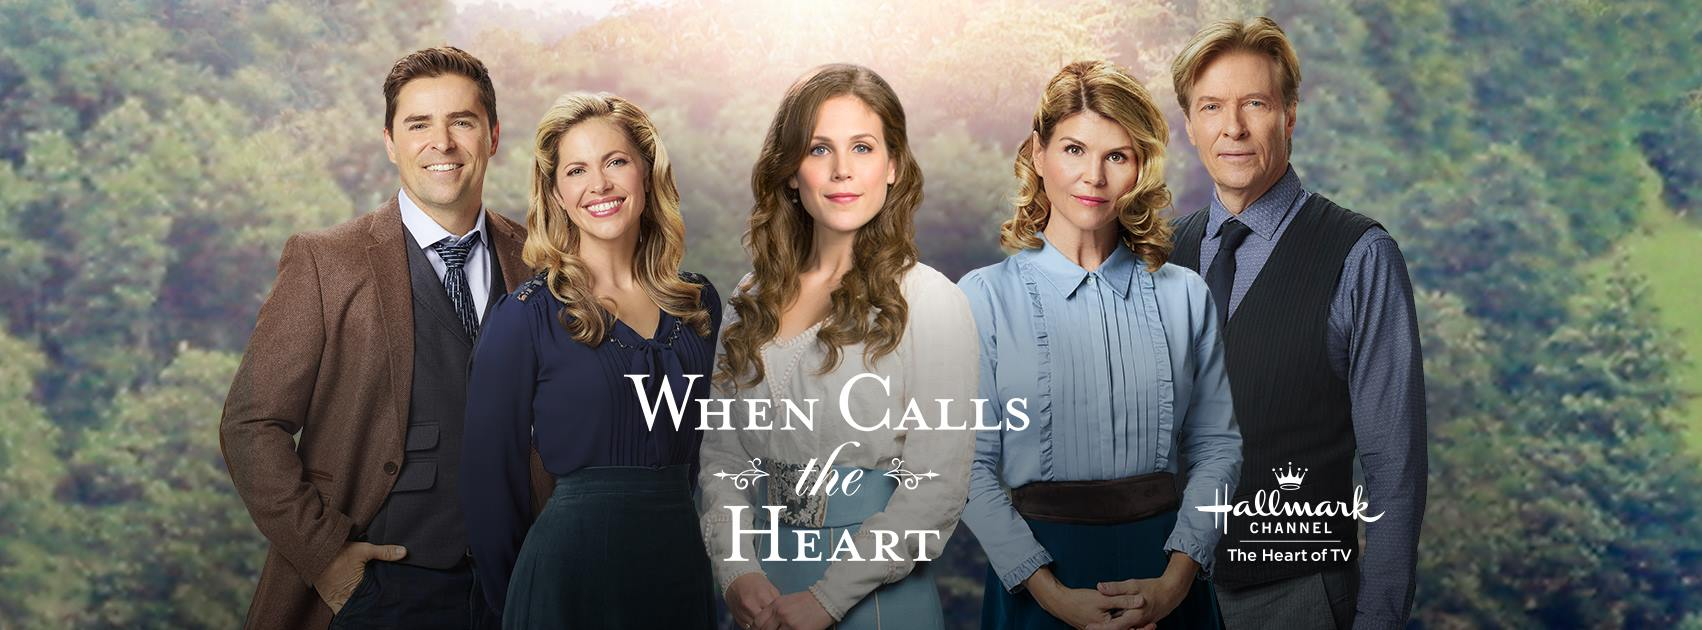 When Calls The Heart Christmas.When Calls The Heart Christmas Special Details How To Get